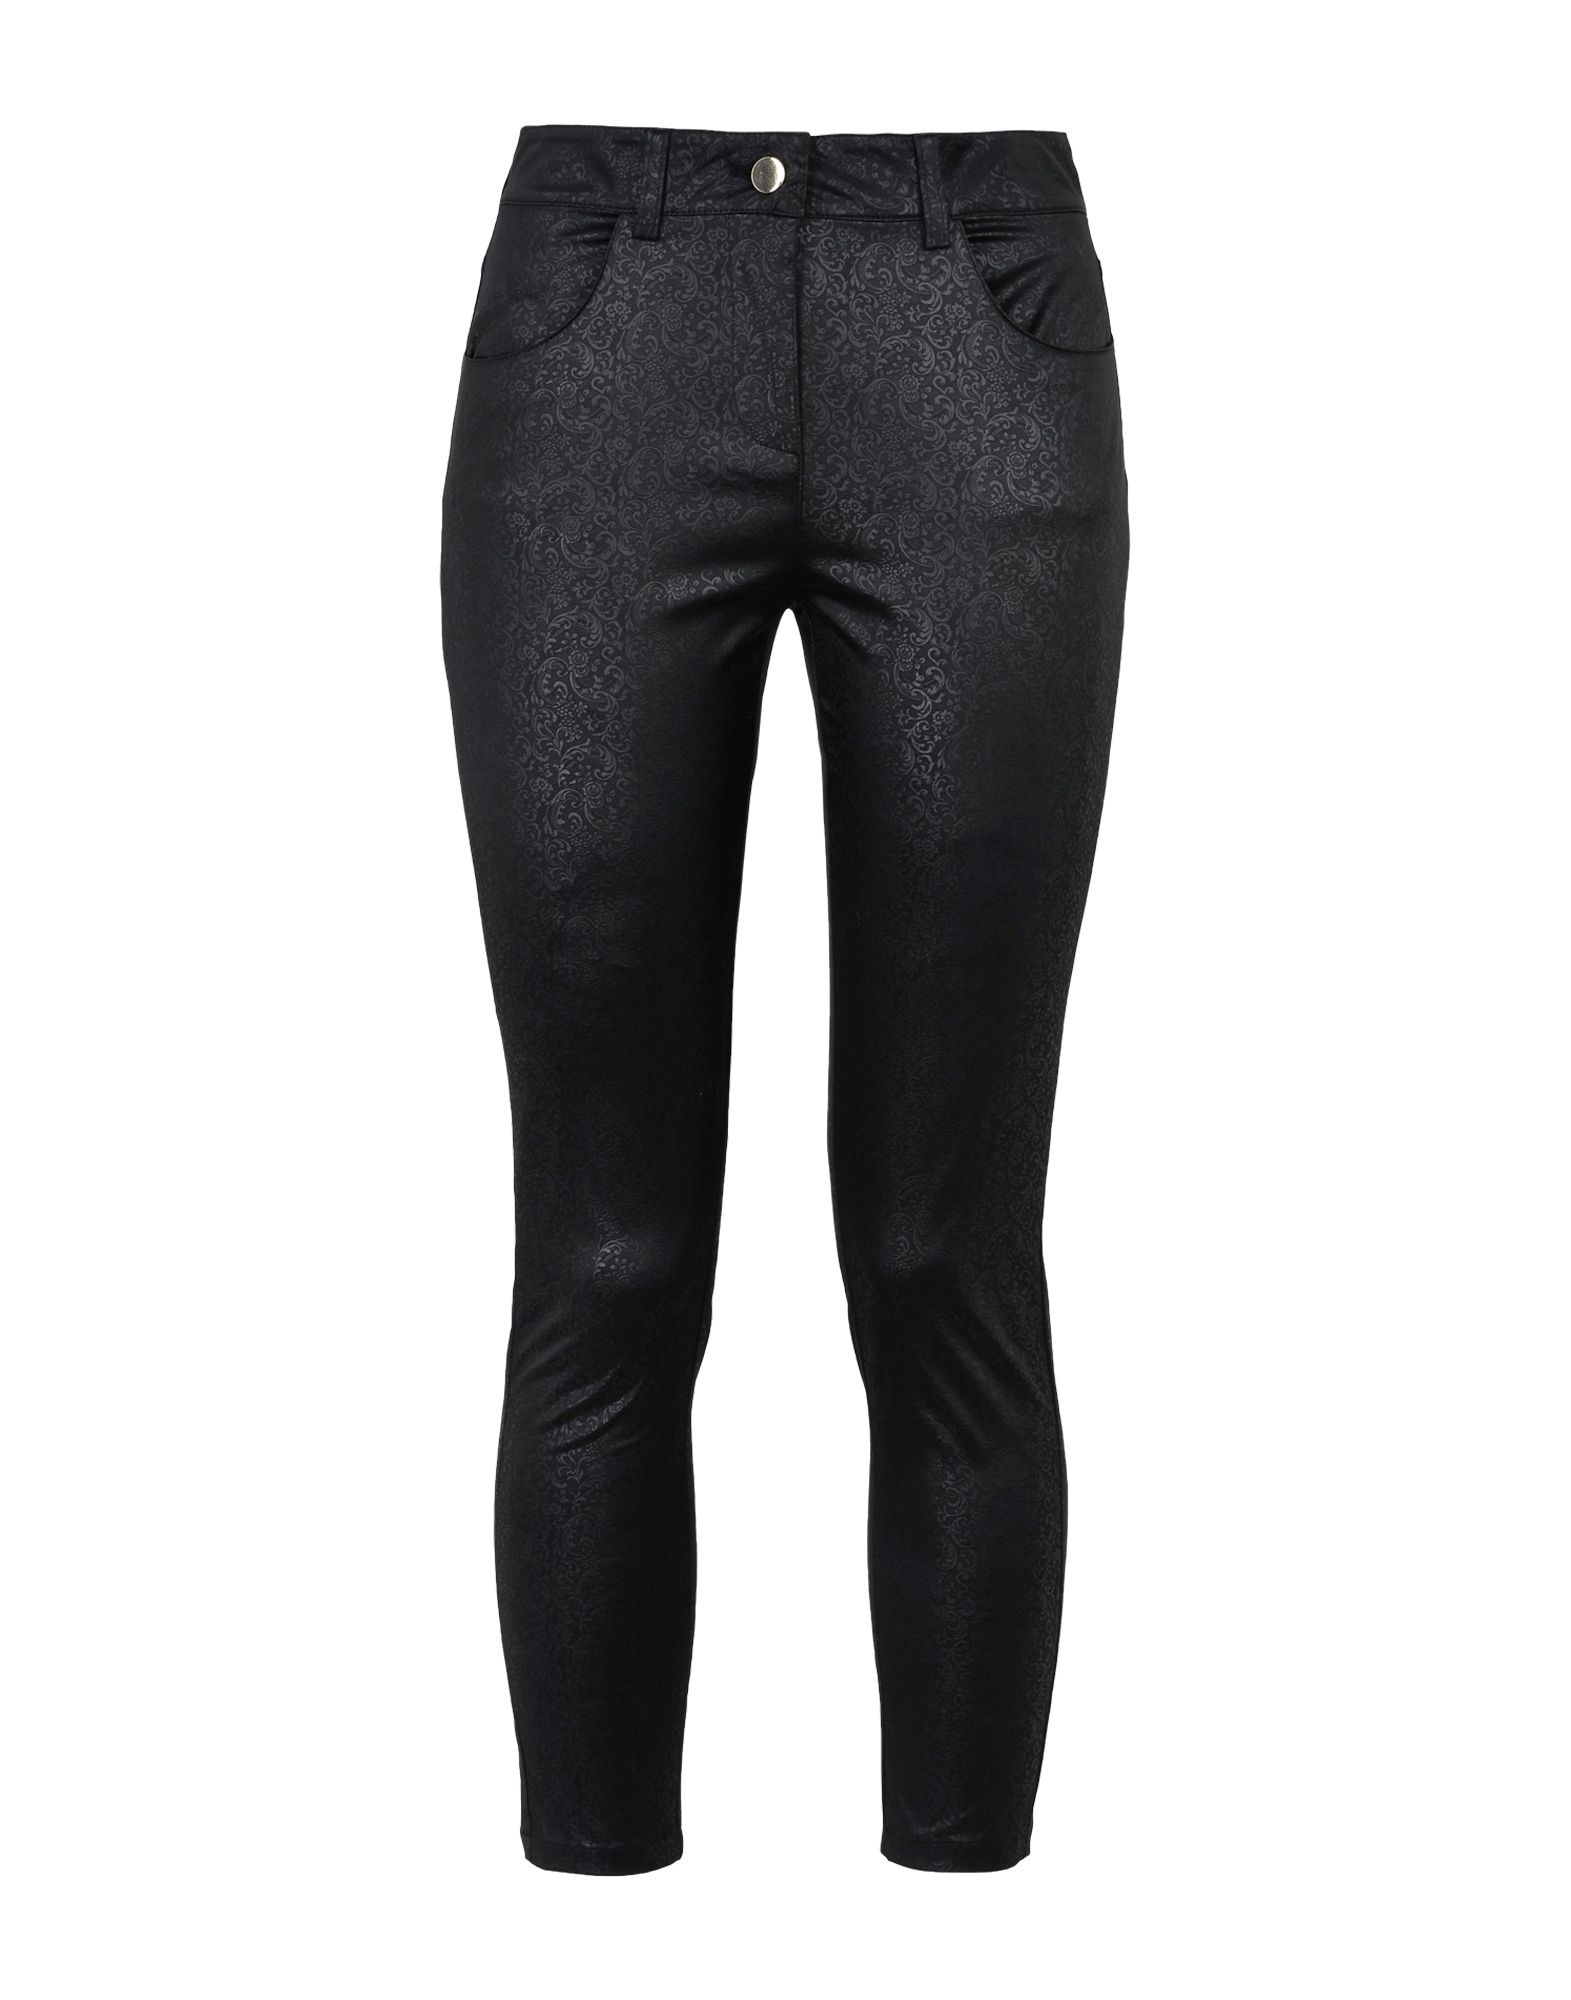 TROUSERS - Casual trousers Jolie By Edward Spiers Clearance Many Kinds Of Cheap Online Ayk4i2Euh